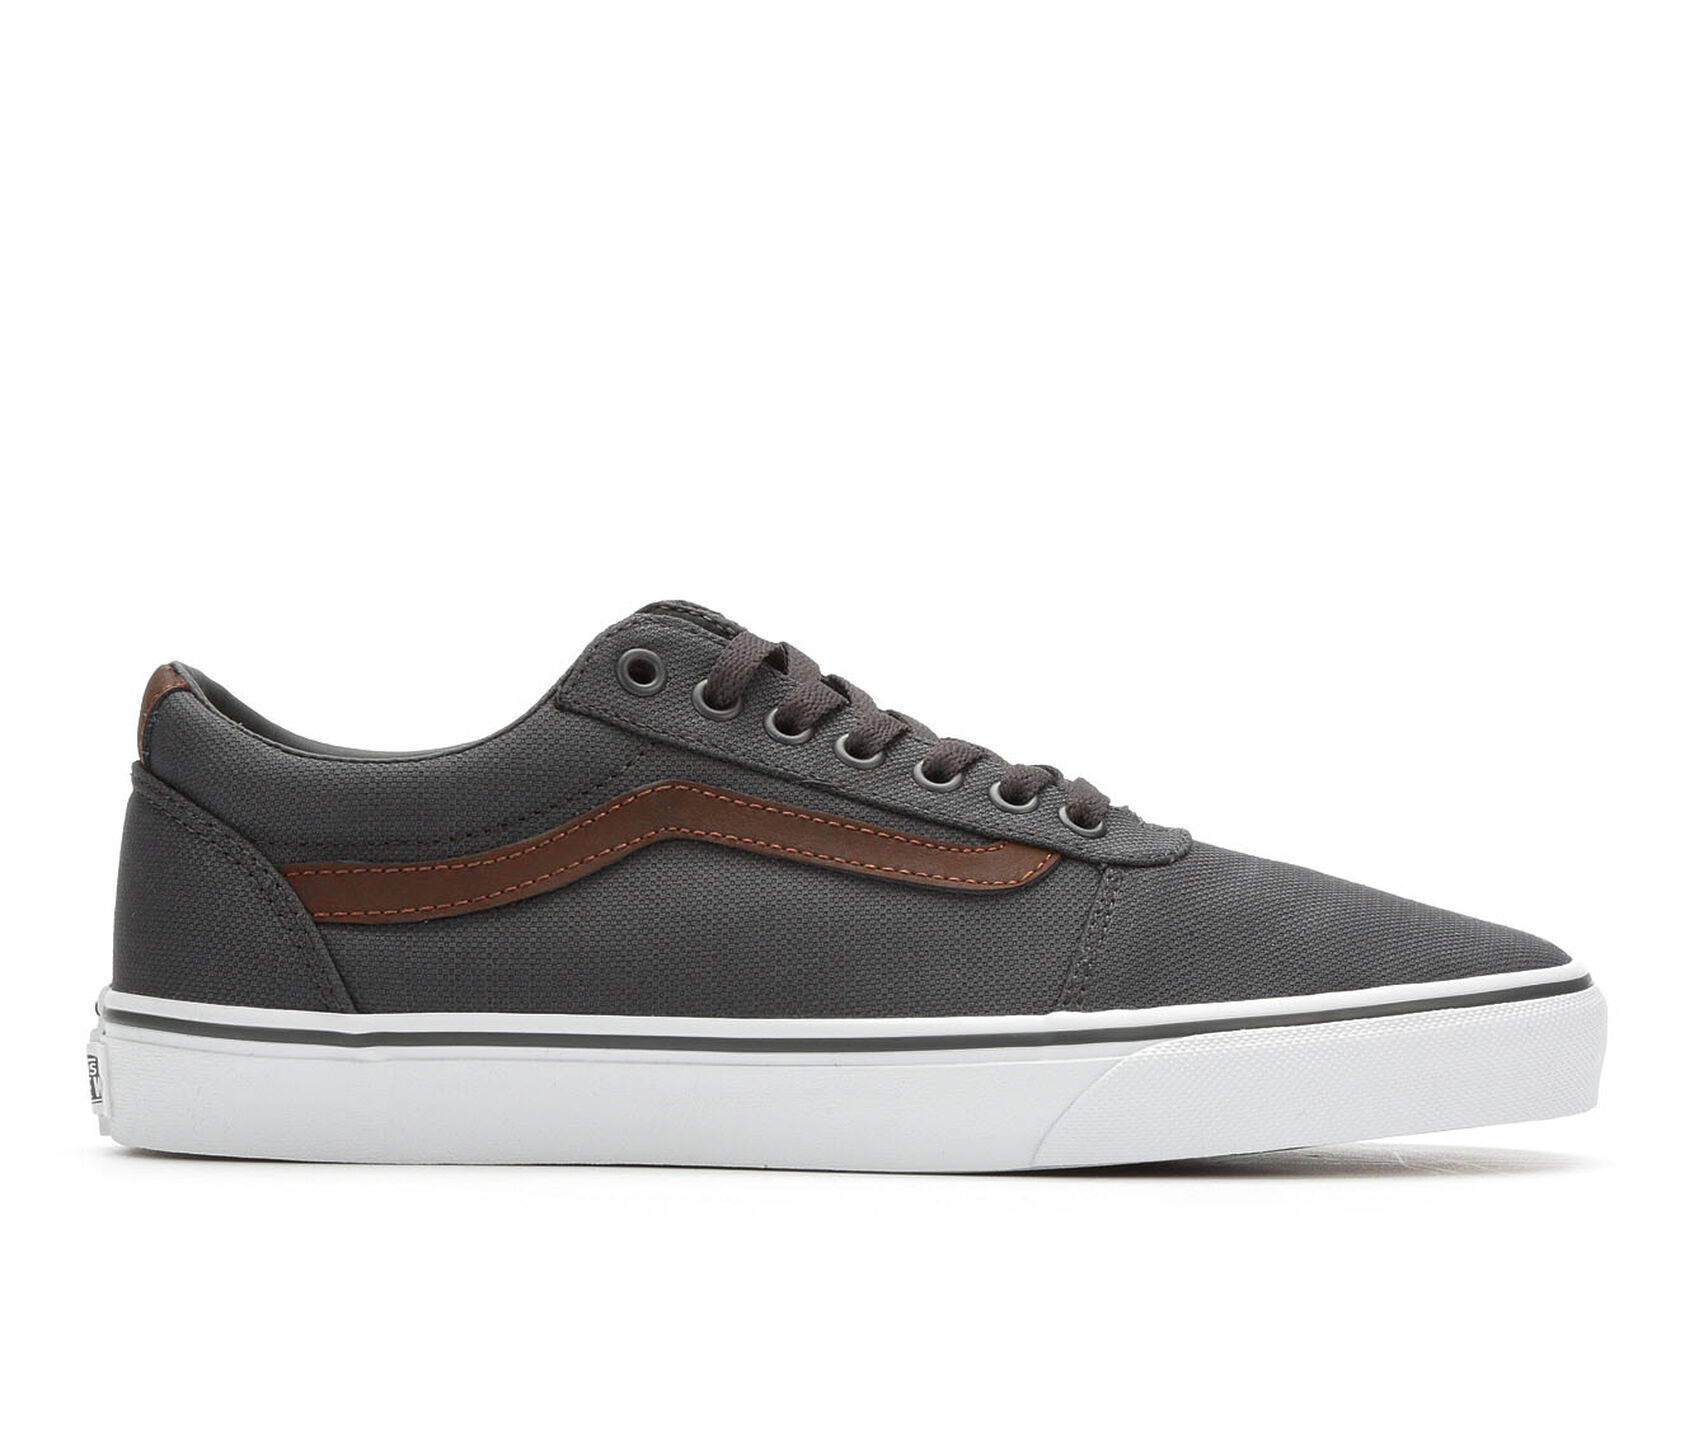 df49b0a0653 ... Vans Ward Deluxe Skate Shoes. Previous